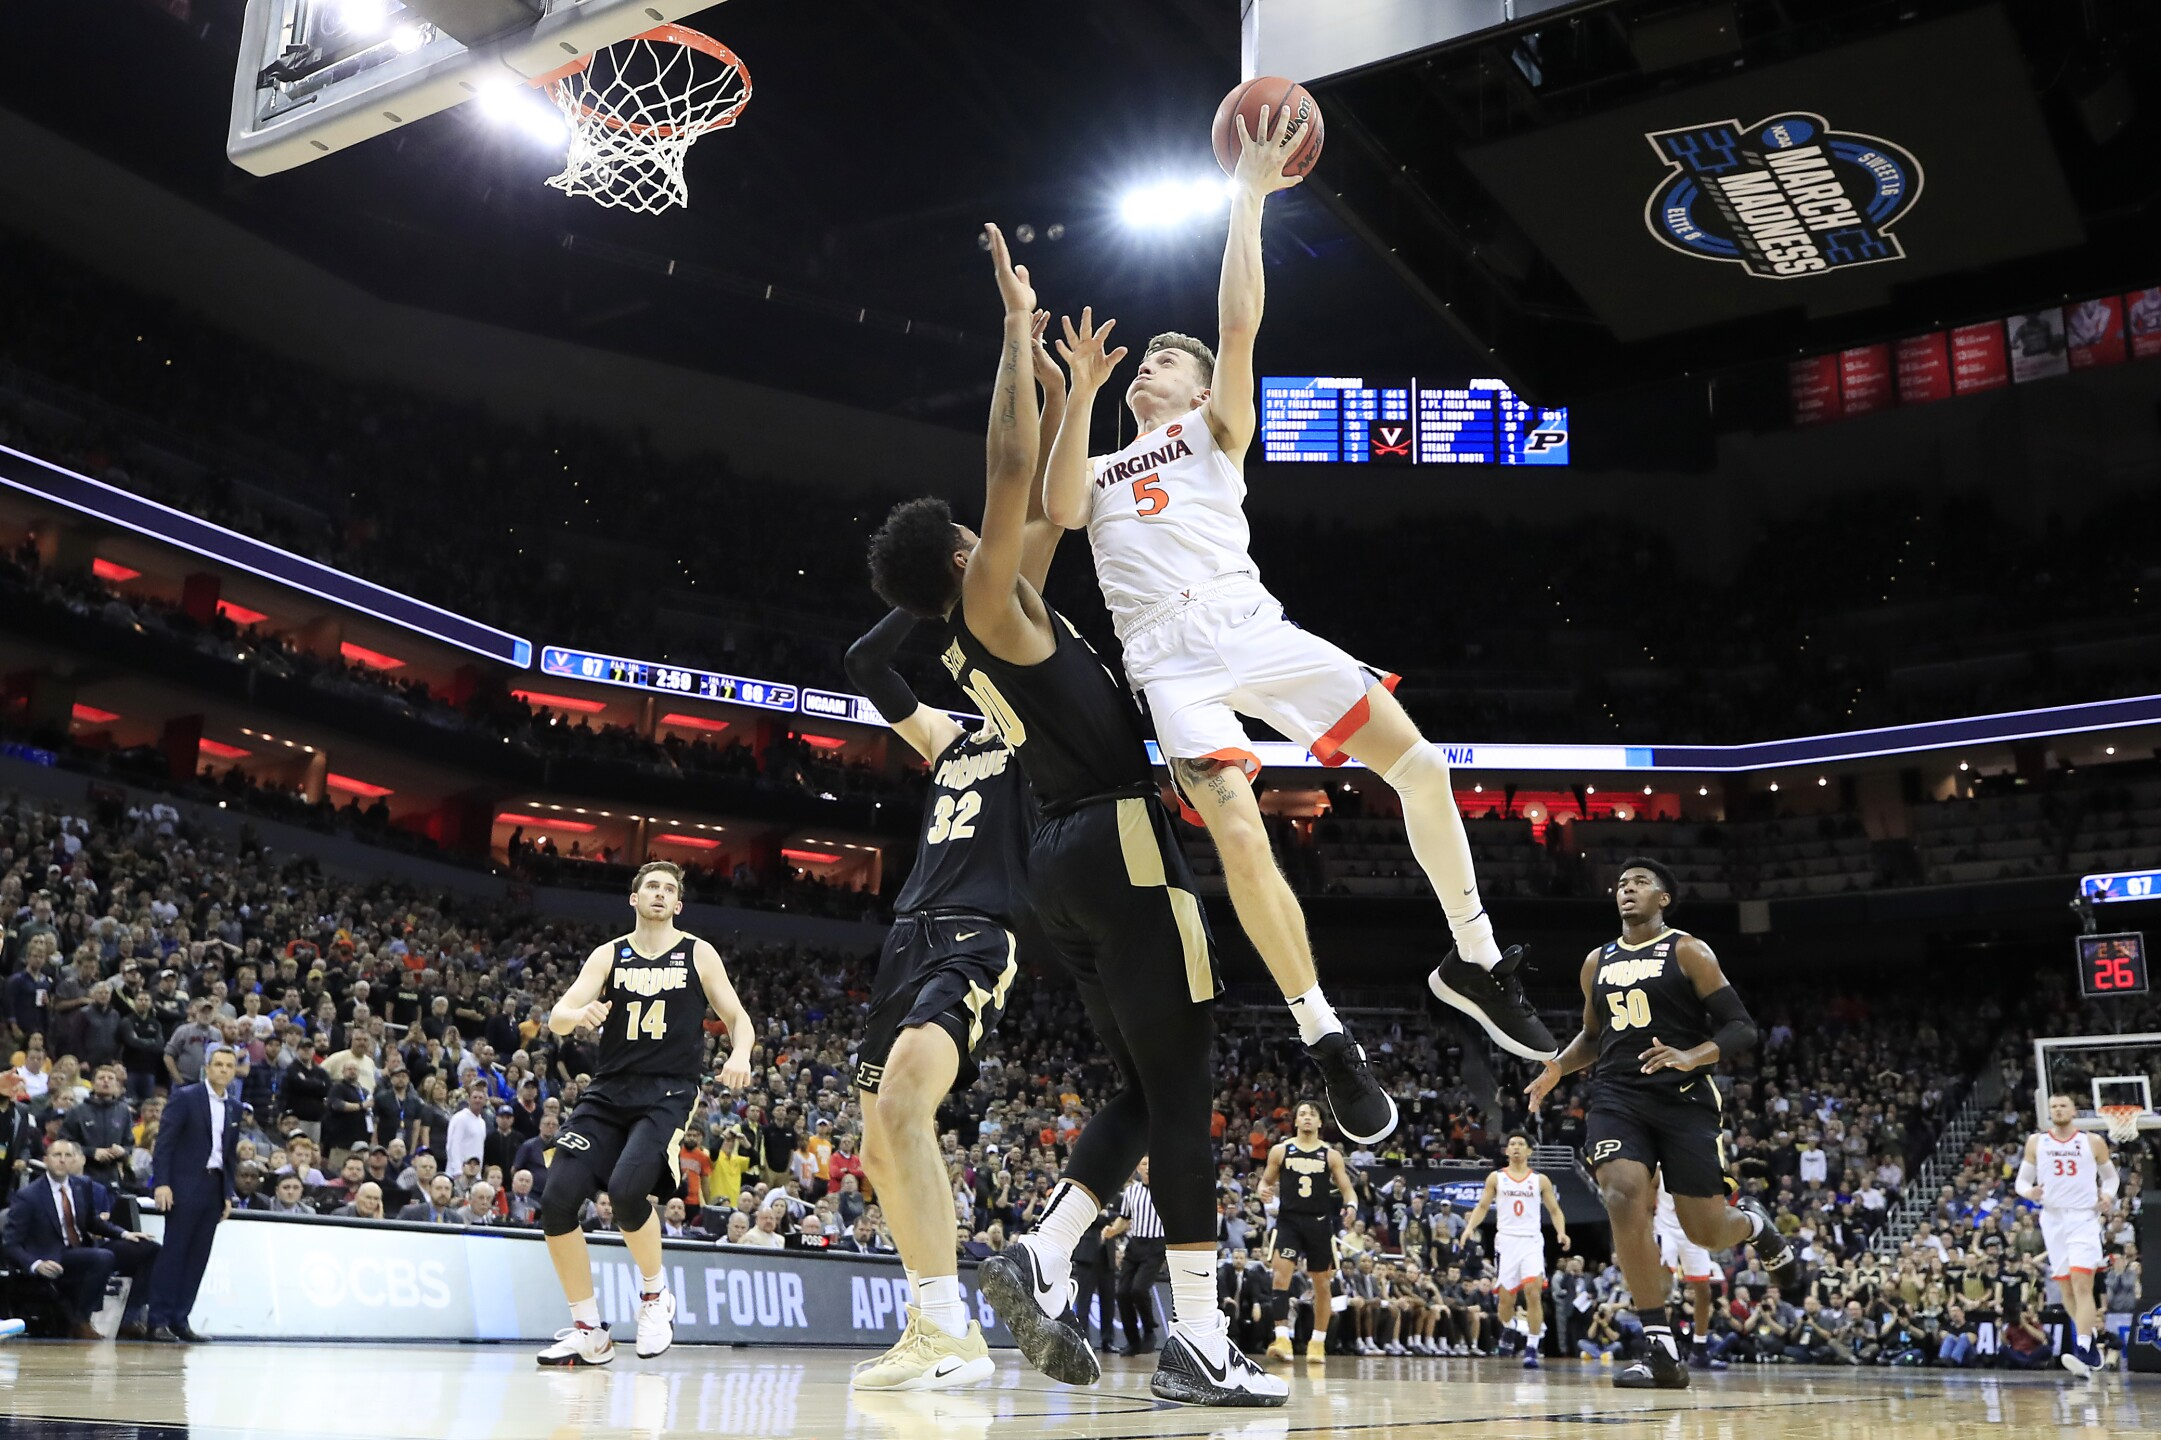 Photos: Photos: Virginia beats Purdue to advance to first Final Four in 35 years